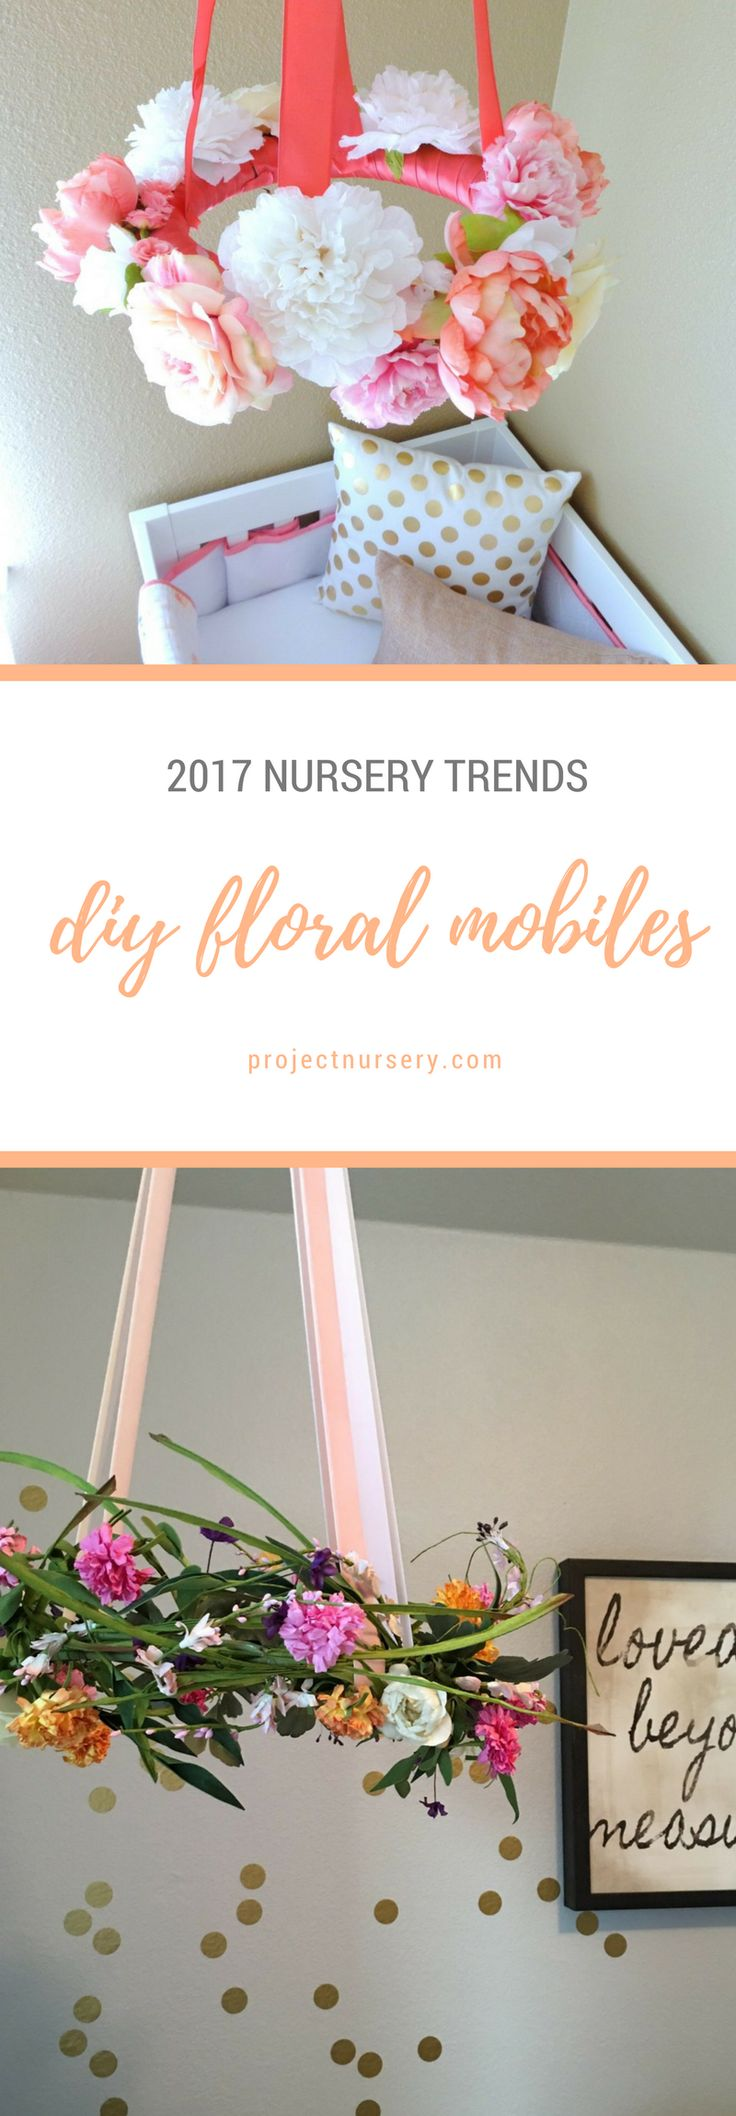 525 best Floral Nursery Ideas images on Pinterest | Babies nursery ...